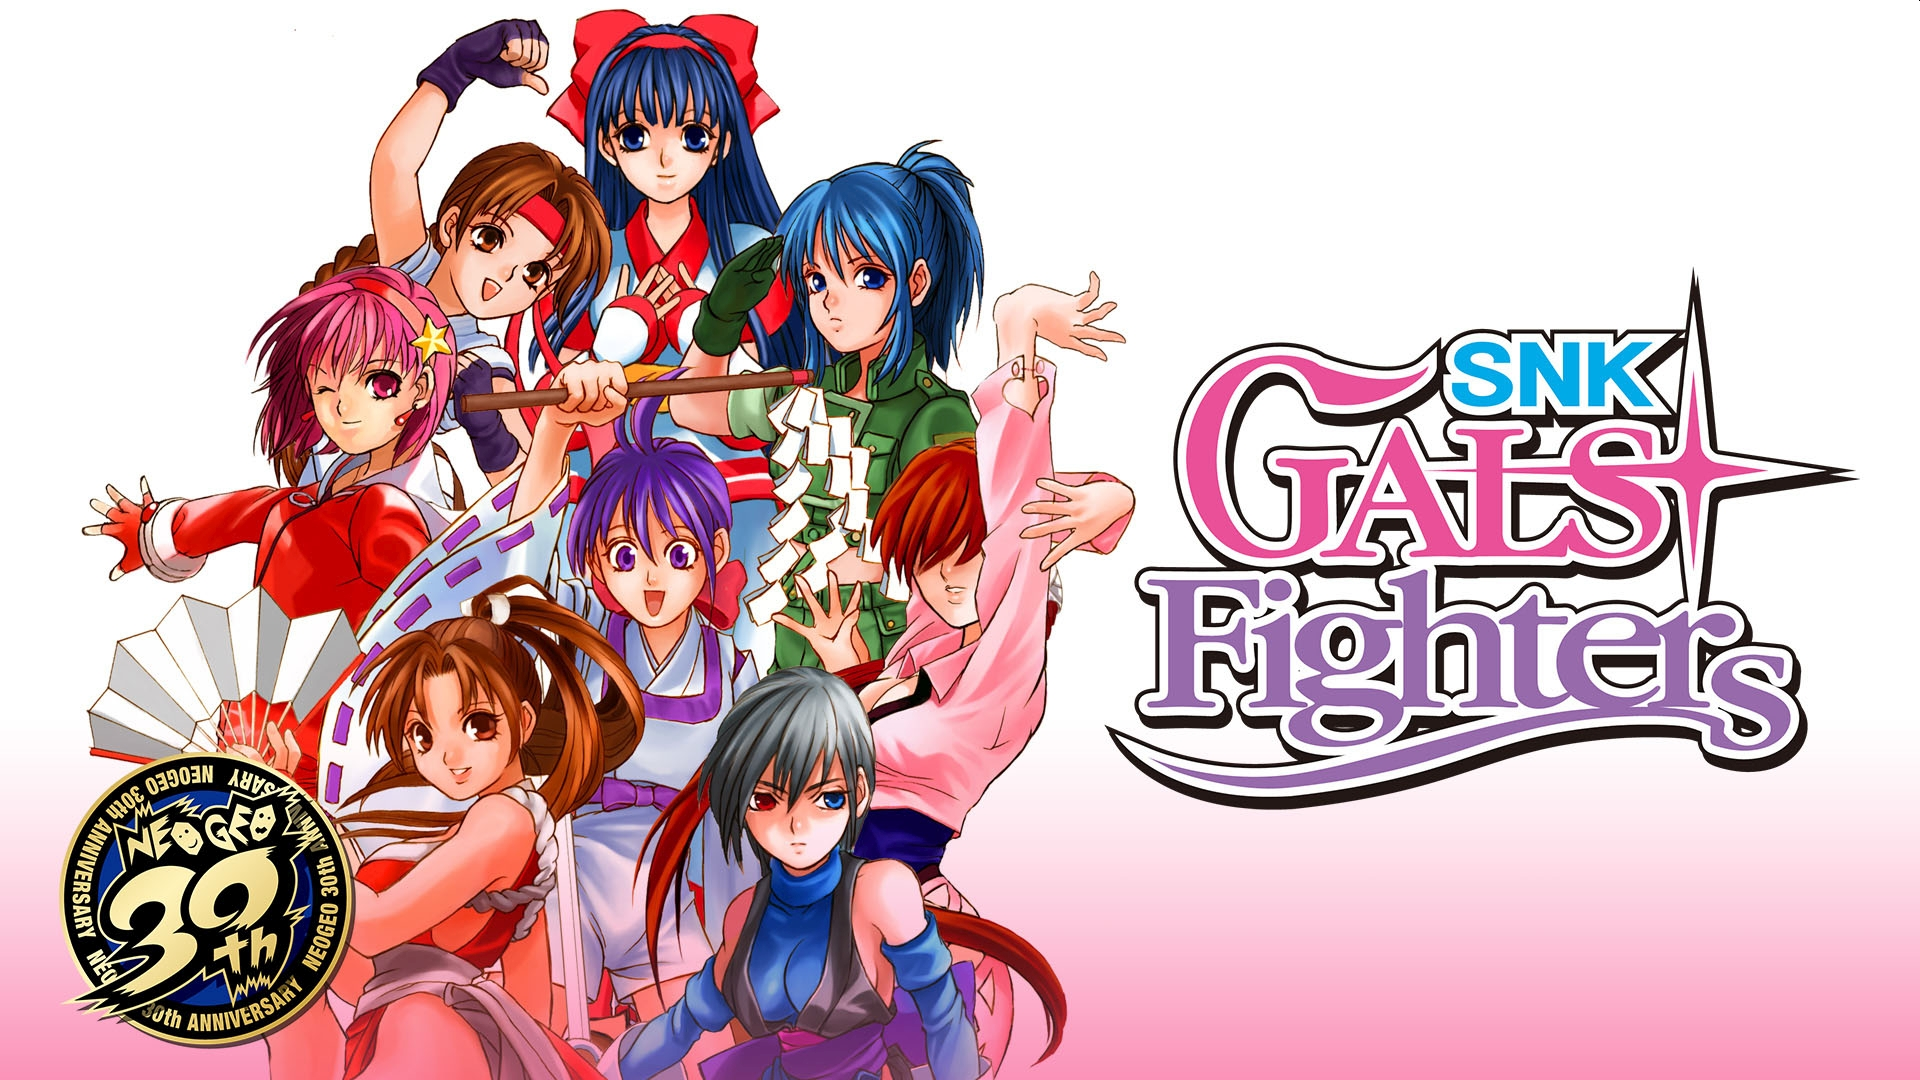 SNK Gals' Fighters Now Available On The Nintendo Switch To Celebrate 30th Anniversary Of NEOGEO